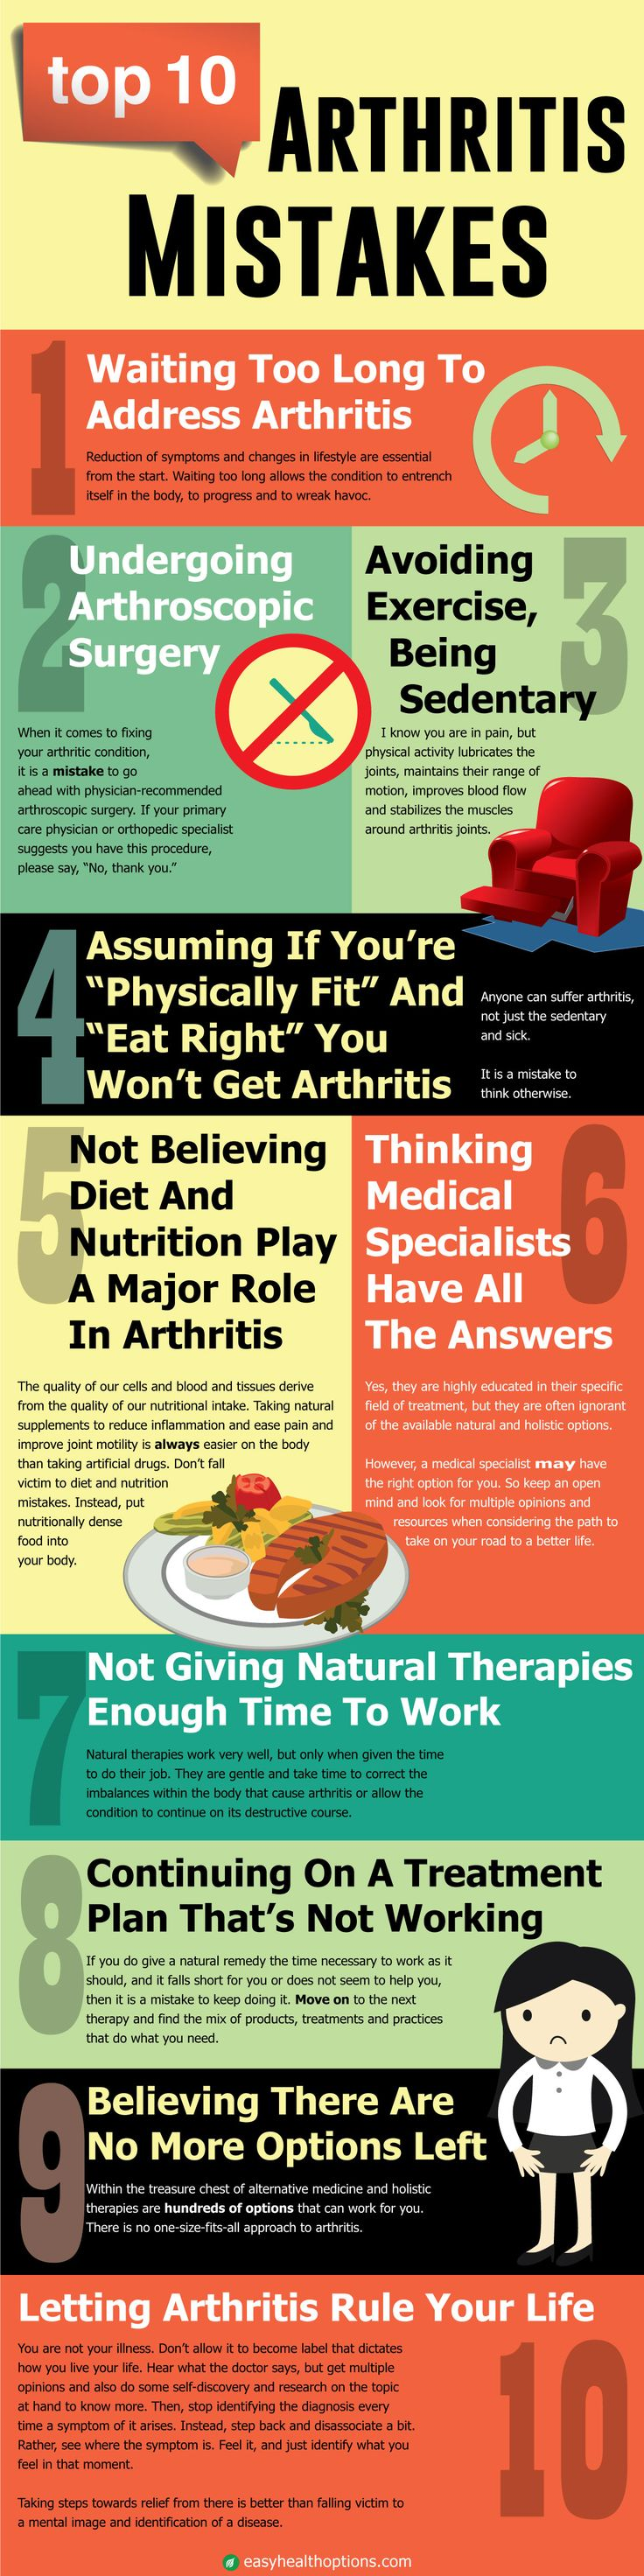 To triumph over arthritis don't make these 10 common mistakes...